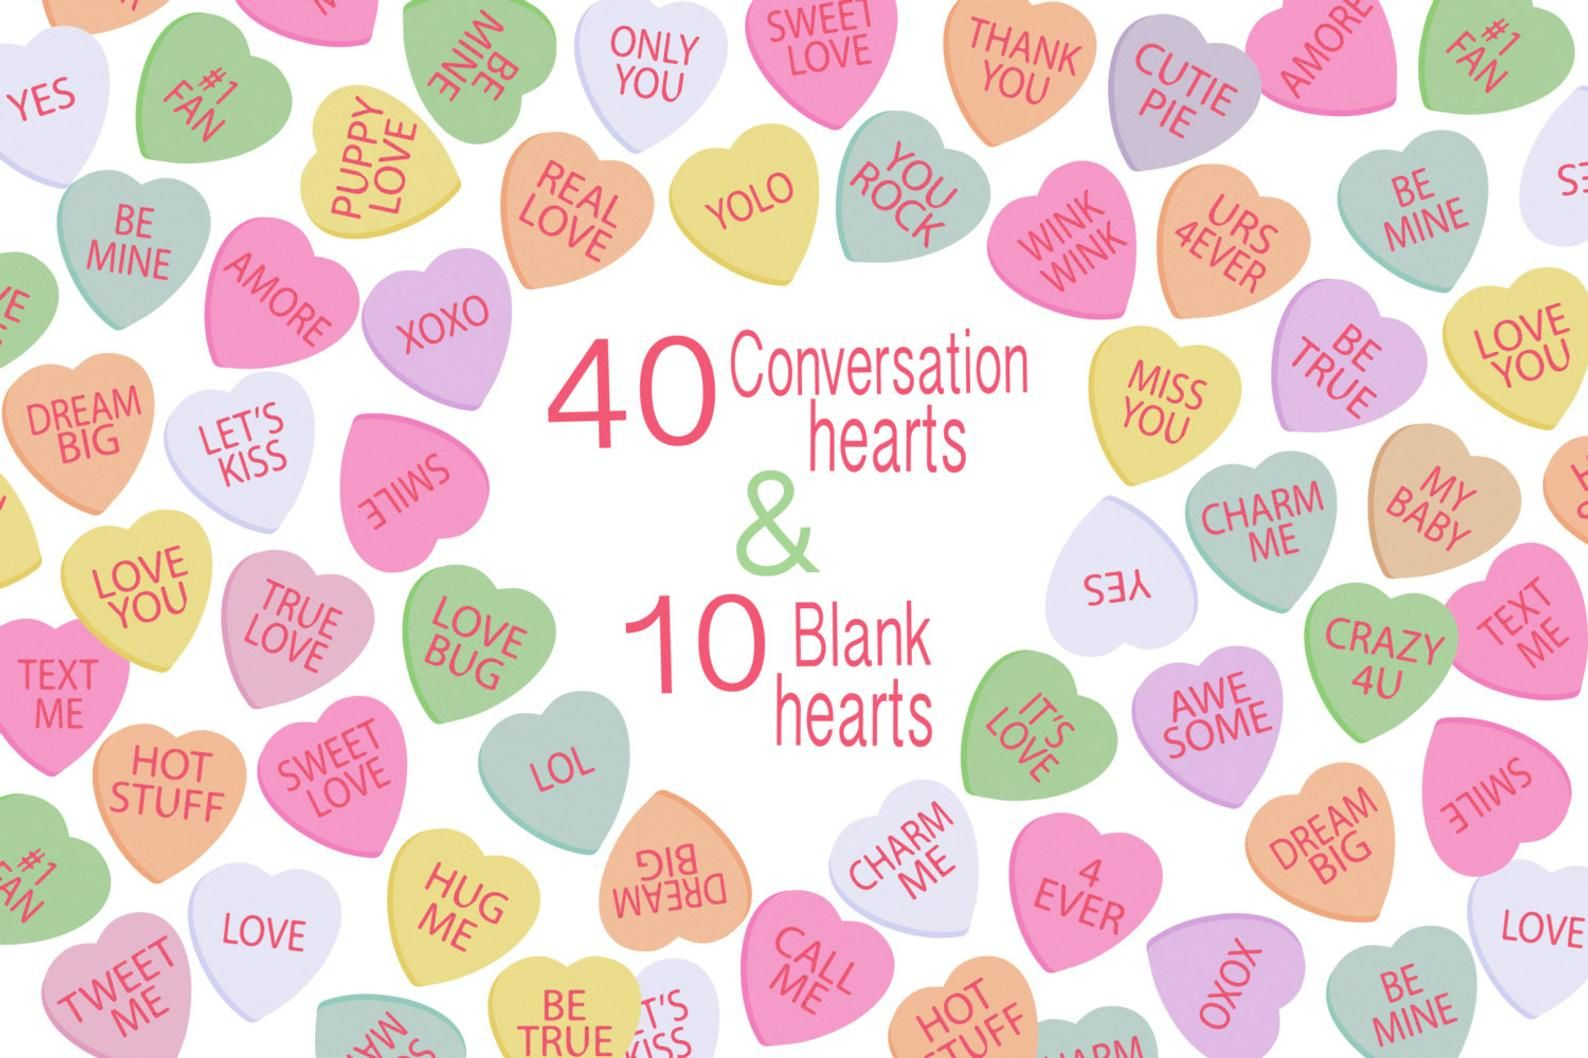 Valentines Day Clipart Candy Hearts Clipart Digital Etsy In 2020 Valentine Clipart Valentines Day Clipart Heart Candy